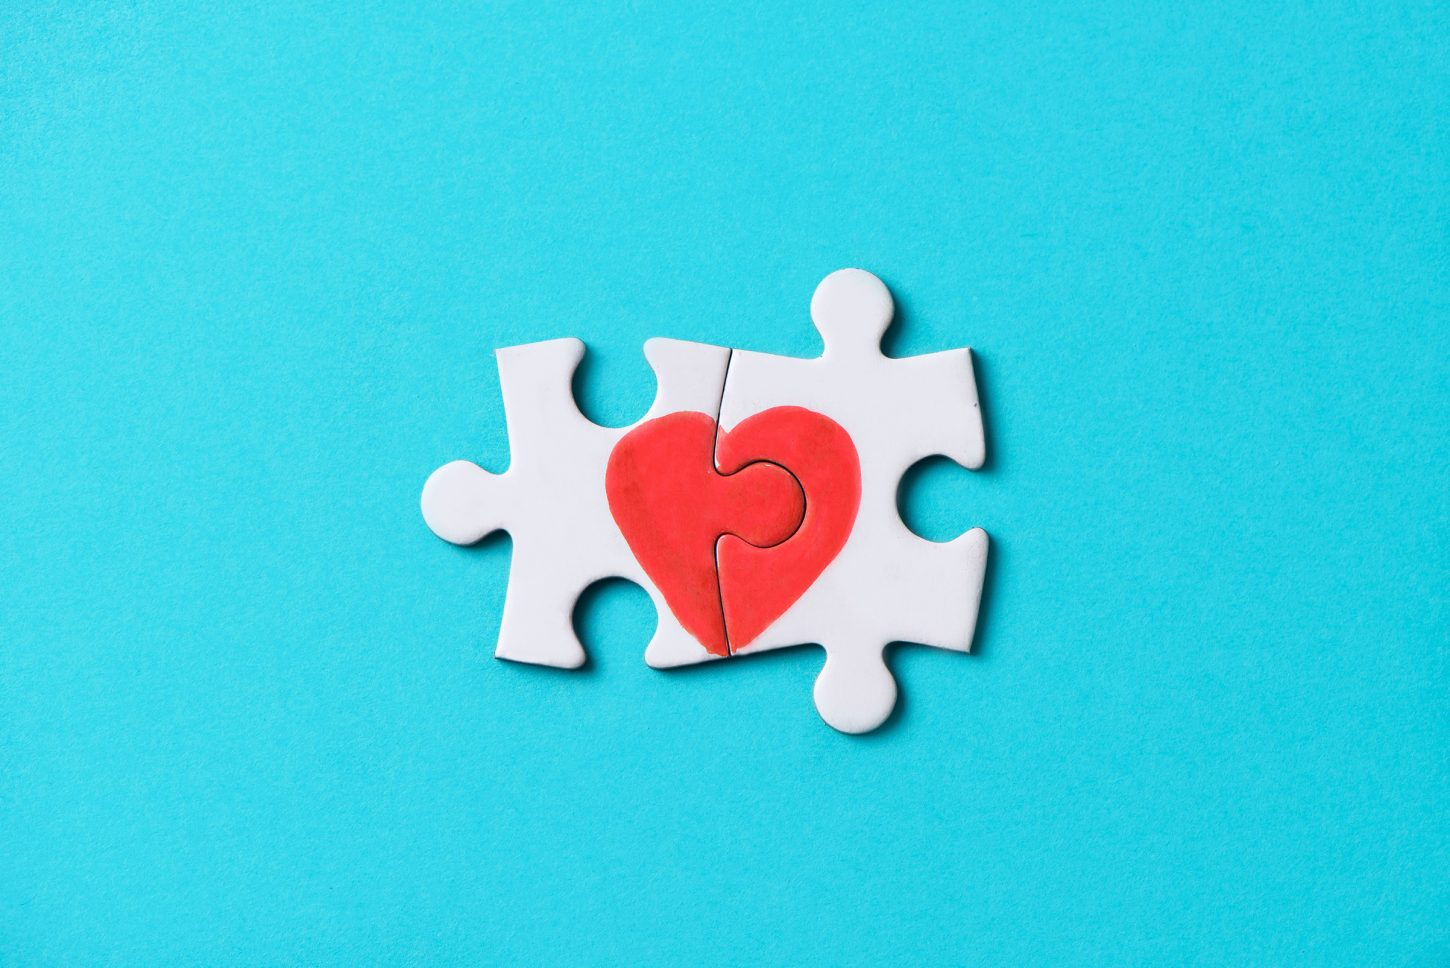 closeup of two pieces of a puzzle forming a heart